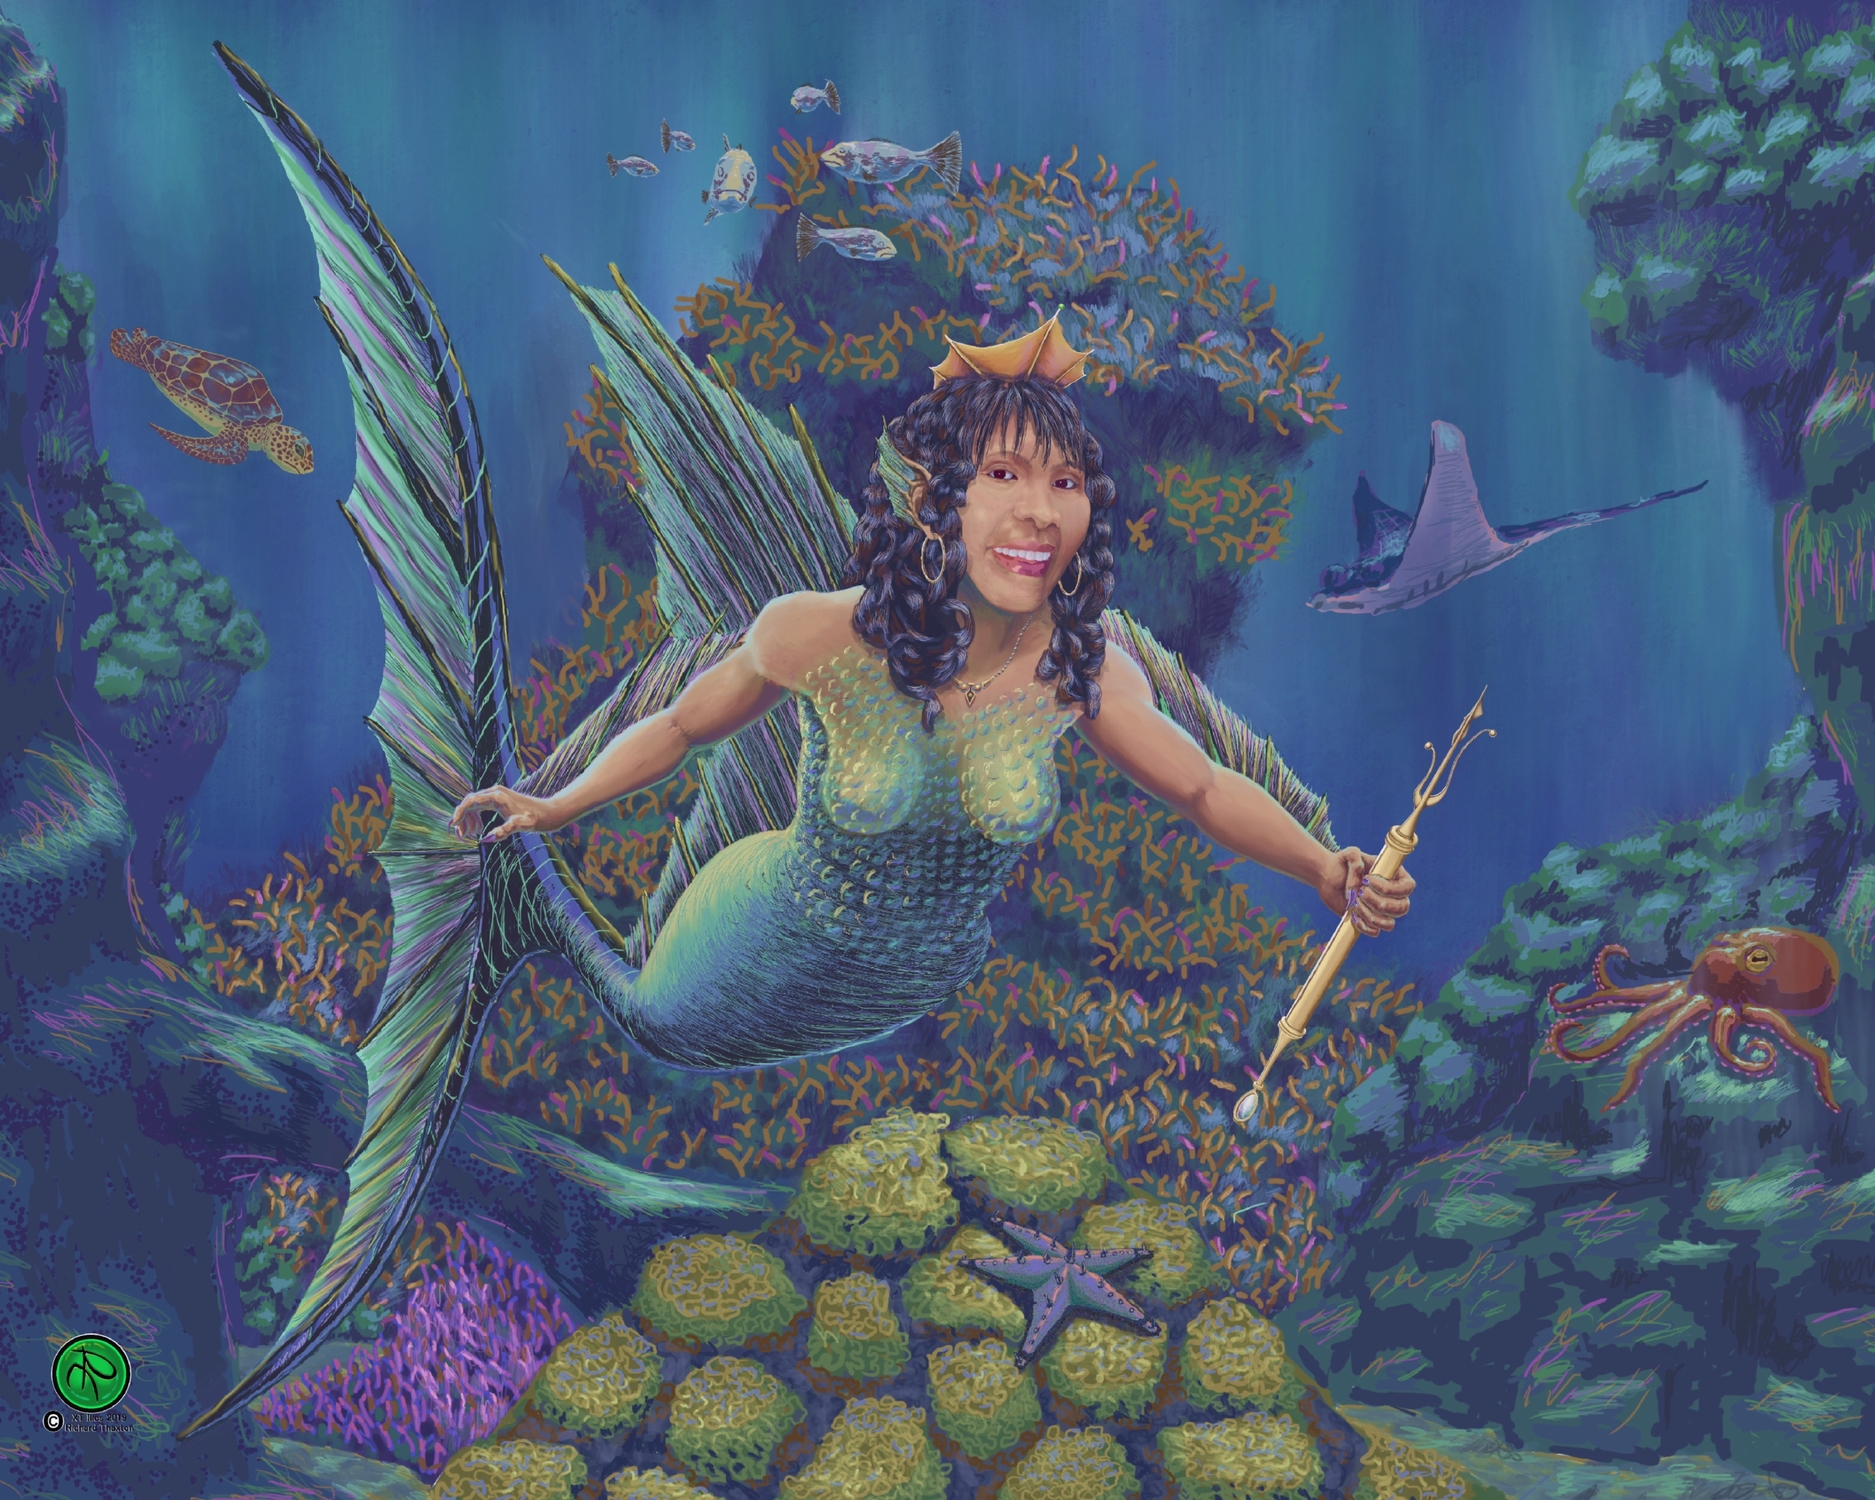 Ying the Bohol Sea Queen Artwork by Richard Thaxton